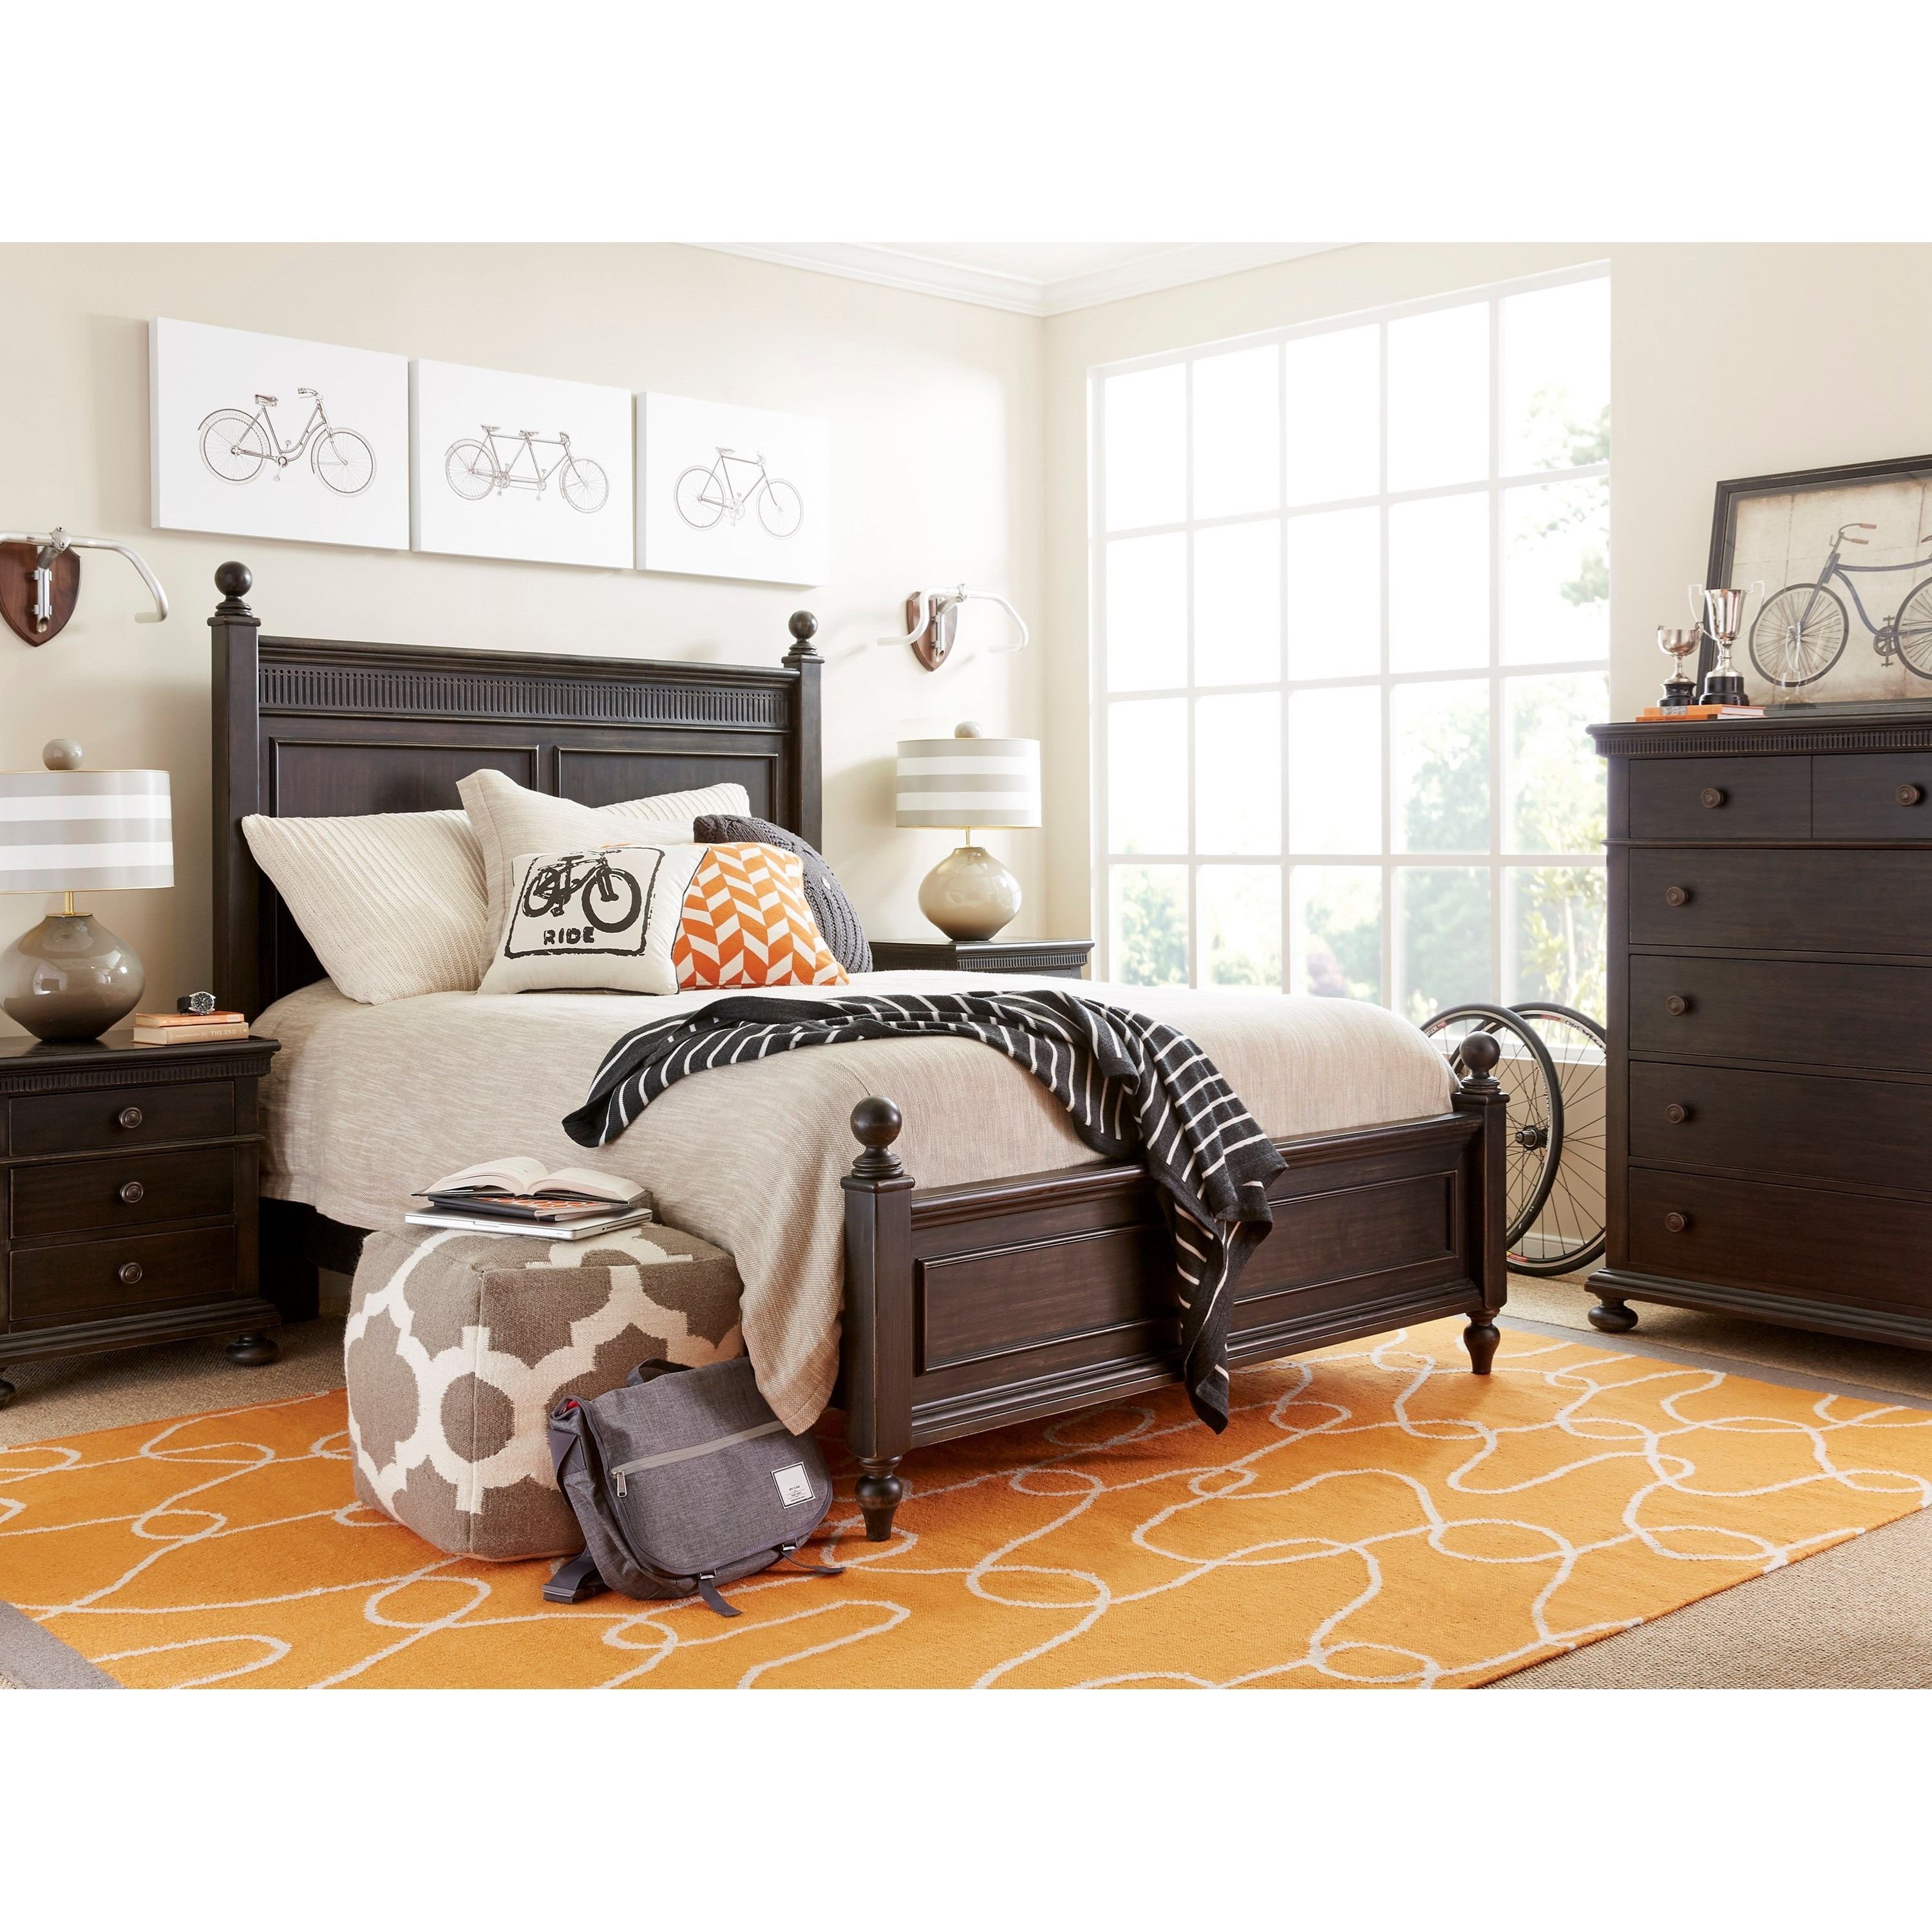 Stone & Leigh Furniture Smiling Hill Full Bedroom Group - Item Number: 560-83 F Bedroom Group 1